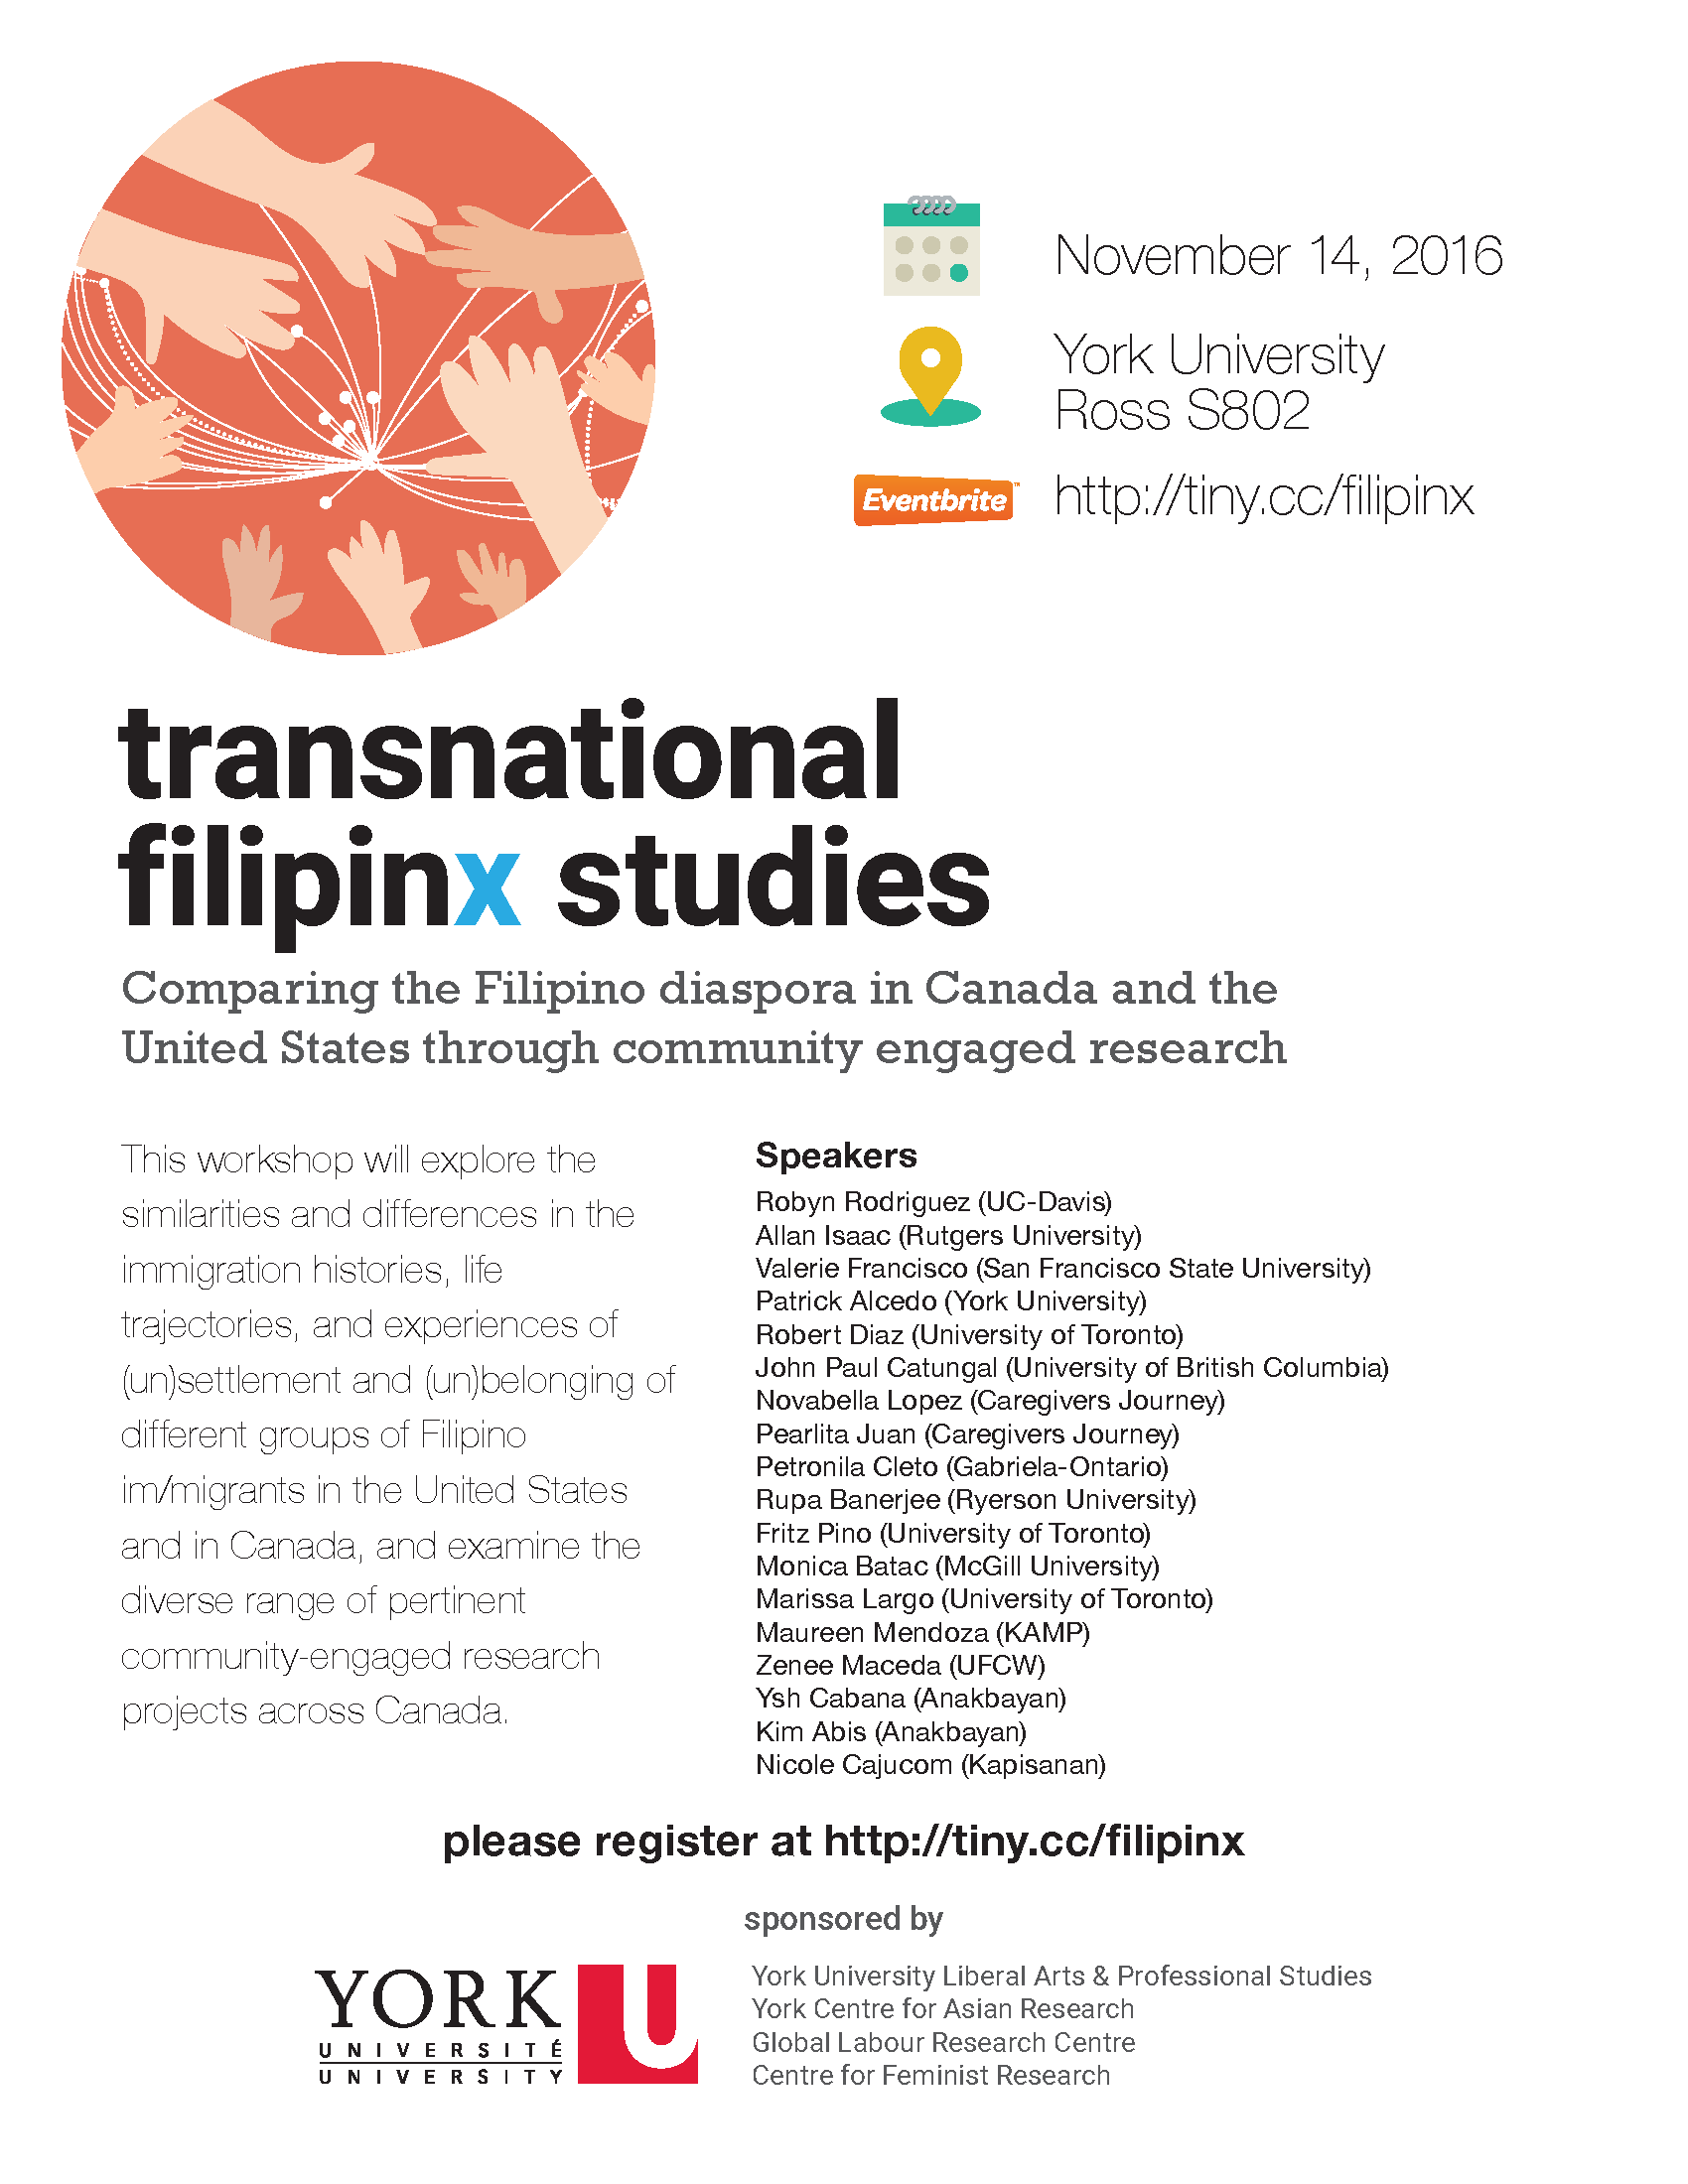 transnational-filipino-studies-conference-poster-copy